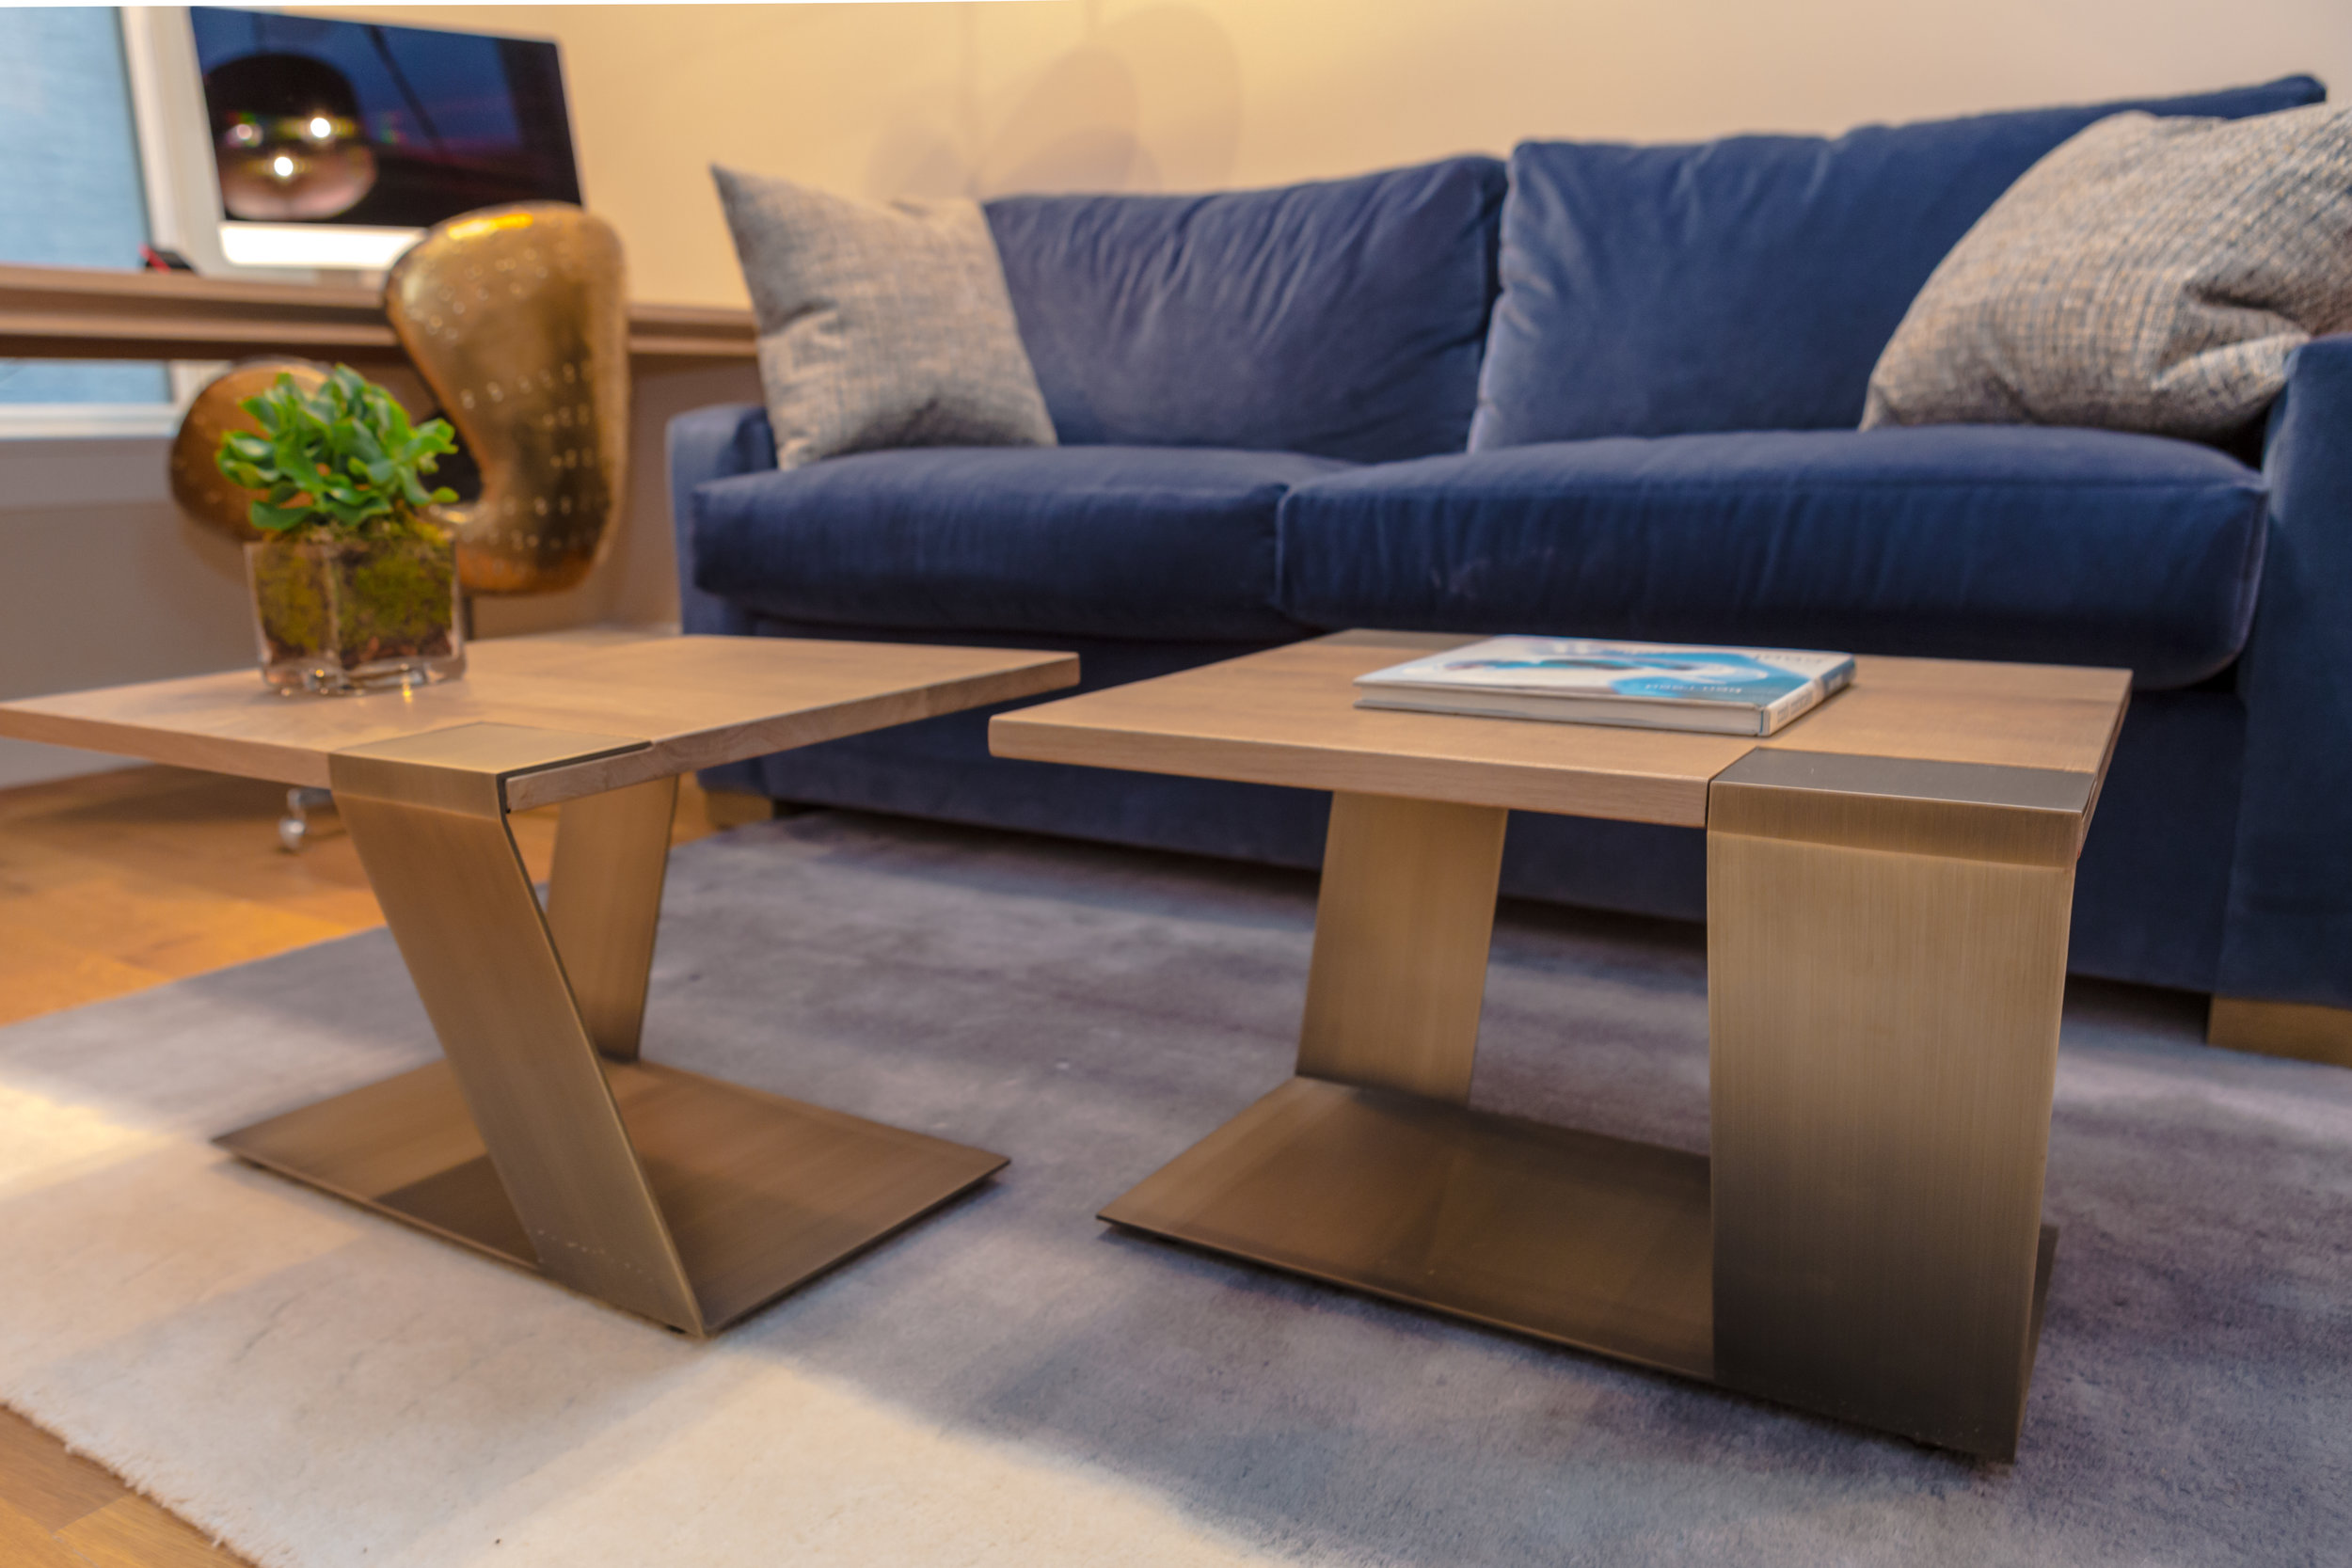 White oak & Metal legs coffee tables designed by MarieBurgosDesign.The use of clean contemporary lines and extraordinary custom furnishings make this Tribeca Bachelor Pad extremely inviting.